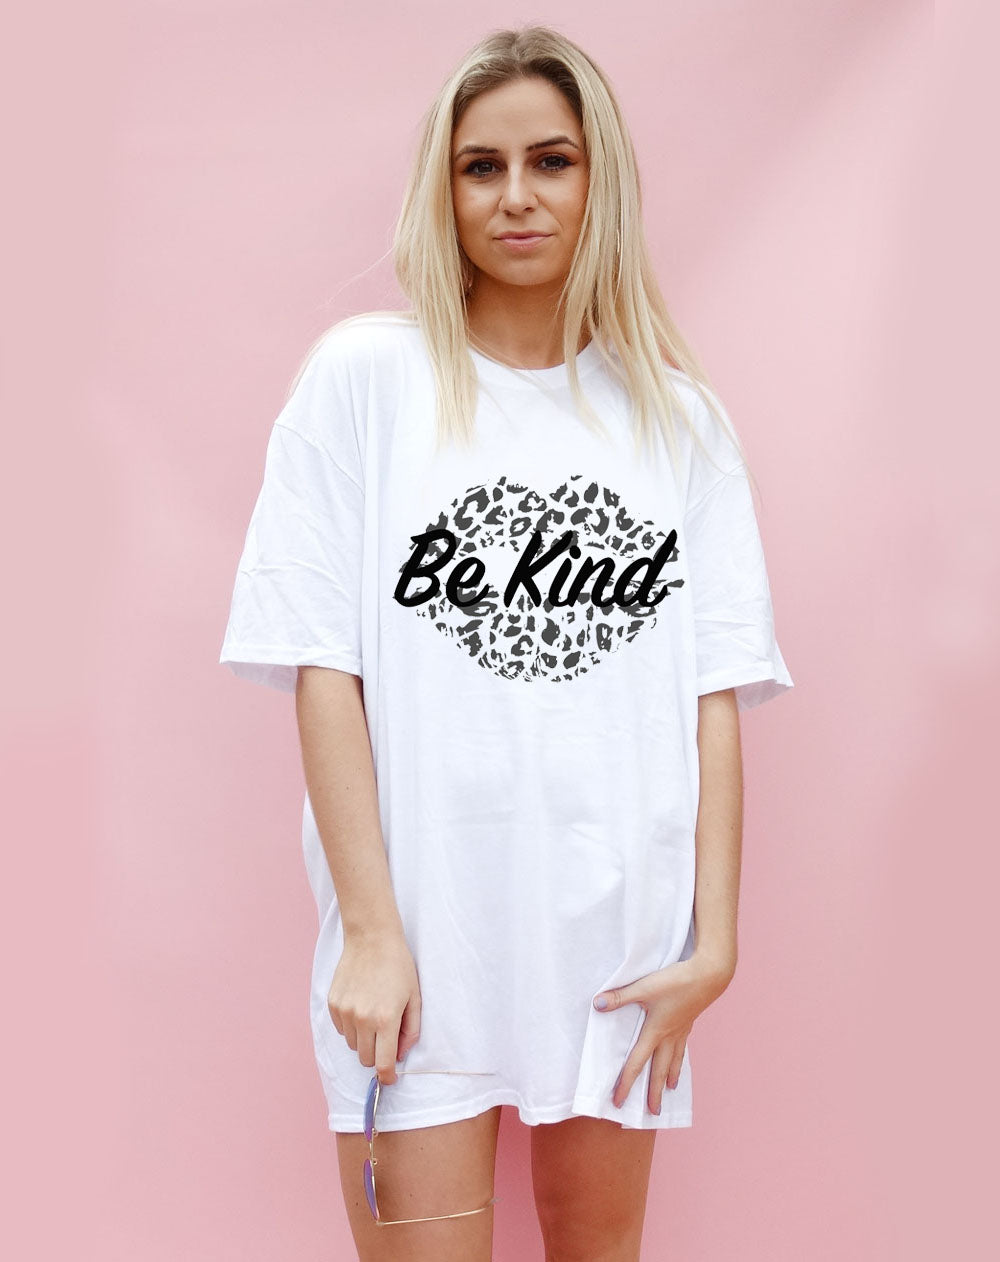 White Oversize Tshirt Print With Be Kind Monochrome Slogan